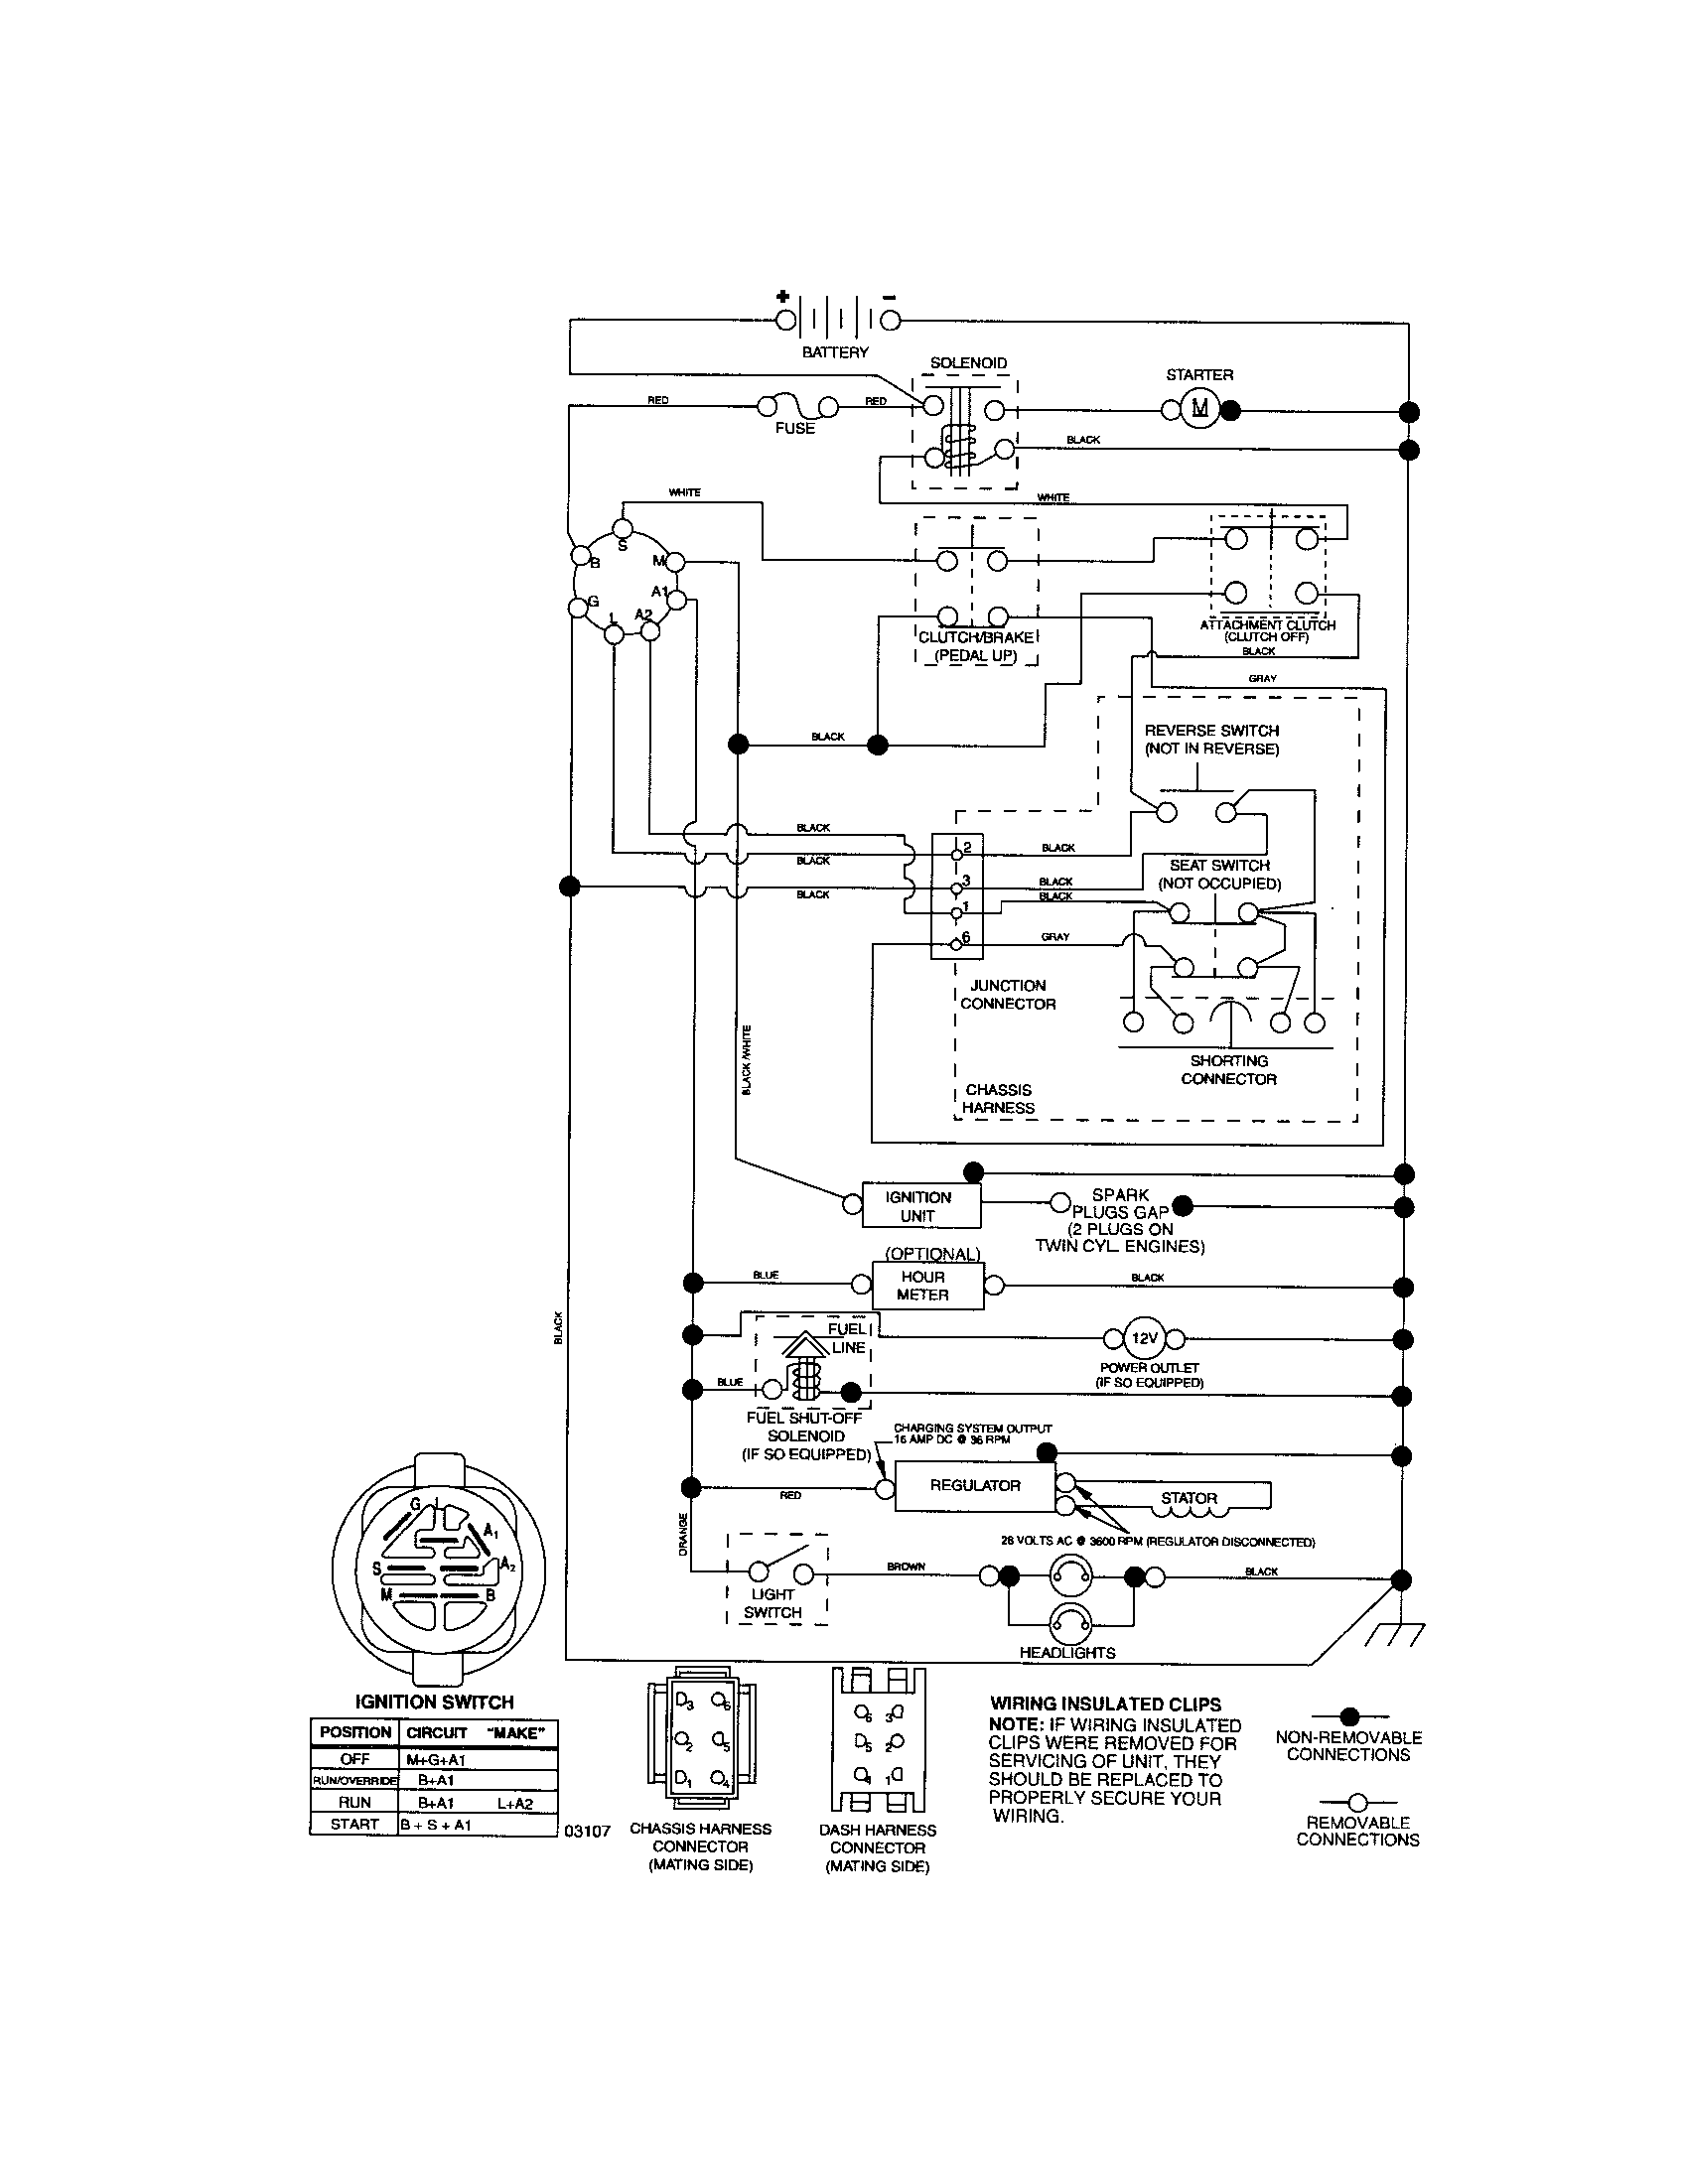 6af5f1447fd13c8443376822ddc1e105 craftsman riding mower electrical diagram wiring diagram Diagram Murray Riding Mower Manual at panicattacktreatment.co